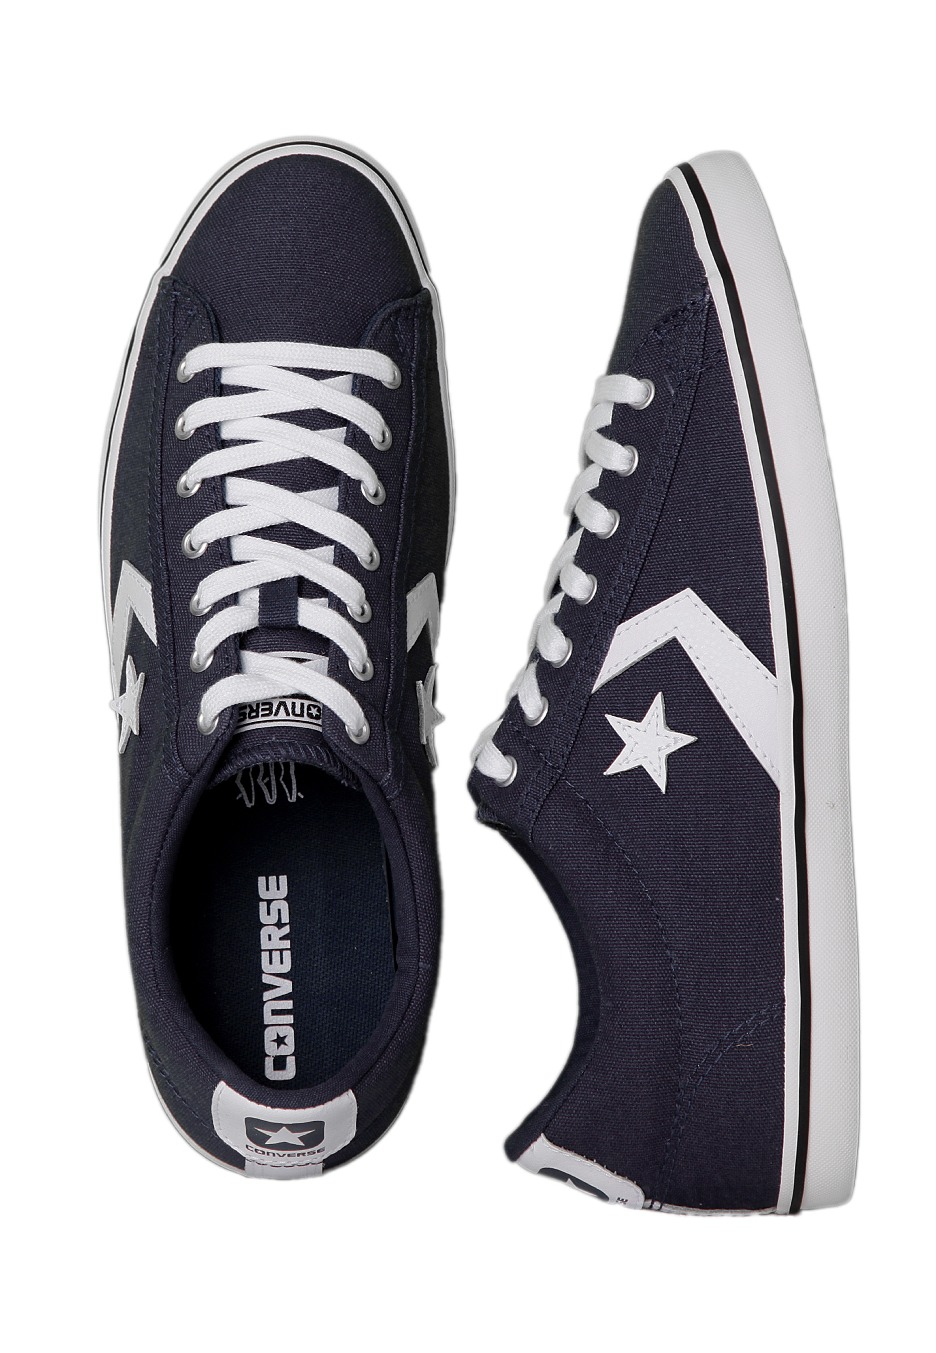 8fde6cdd6a5a Converse - Star Player LP Ox Navy White - Shoes - Impericon.com UK